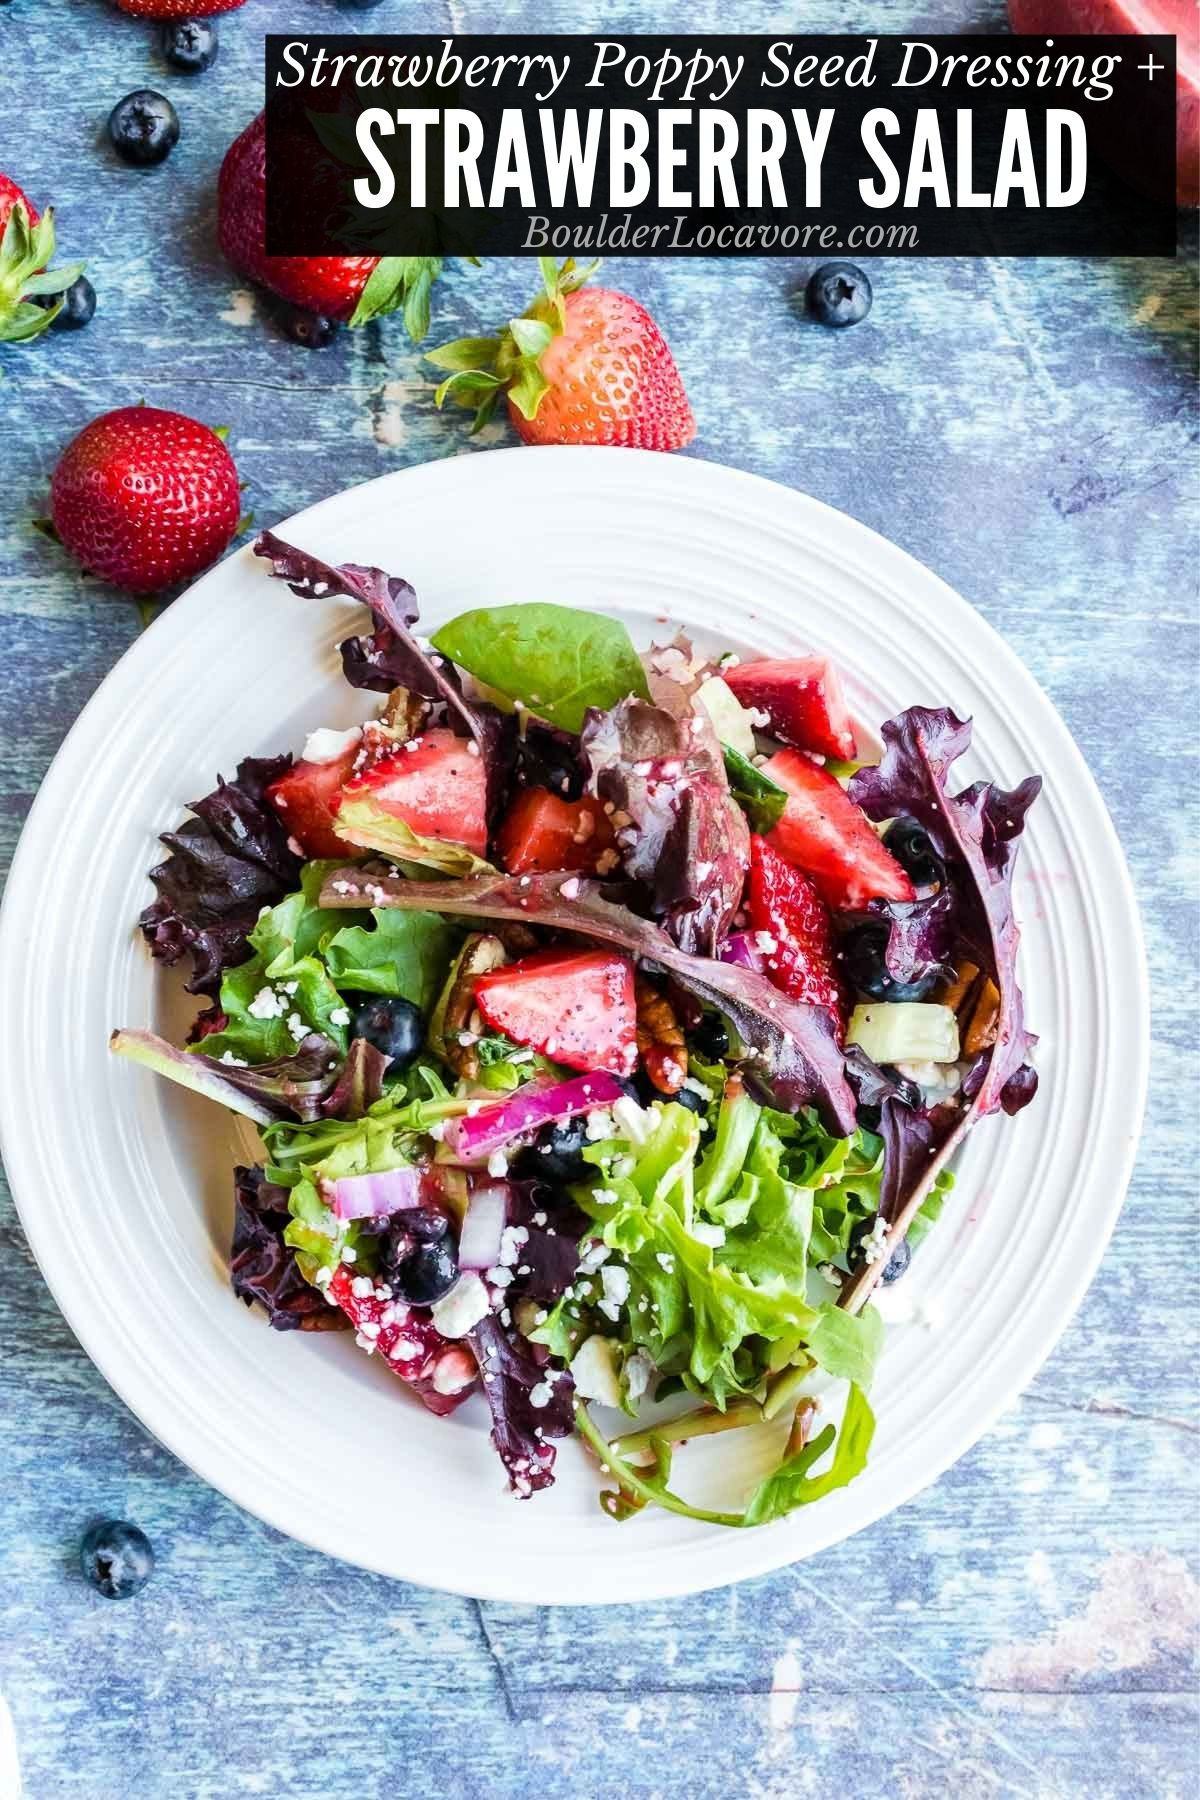 Strawberry Salad with Strawberry Poppy Seed Dressing on a white plate with recipe title